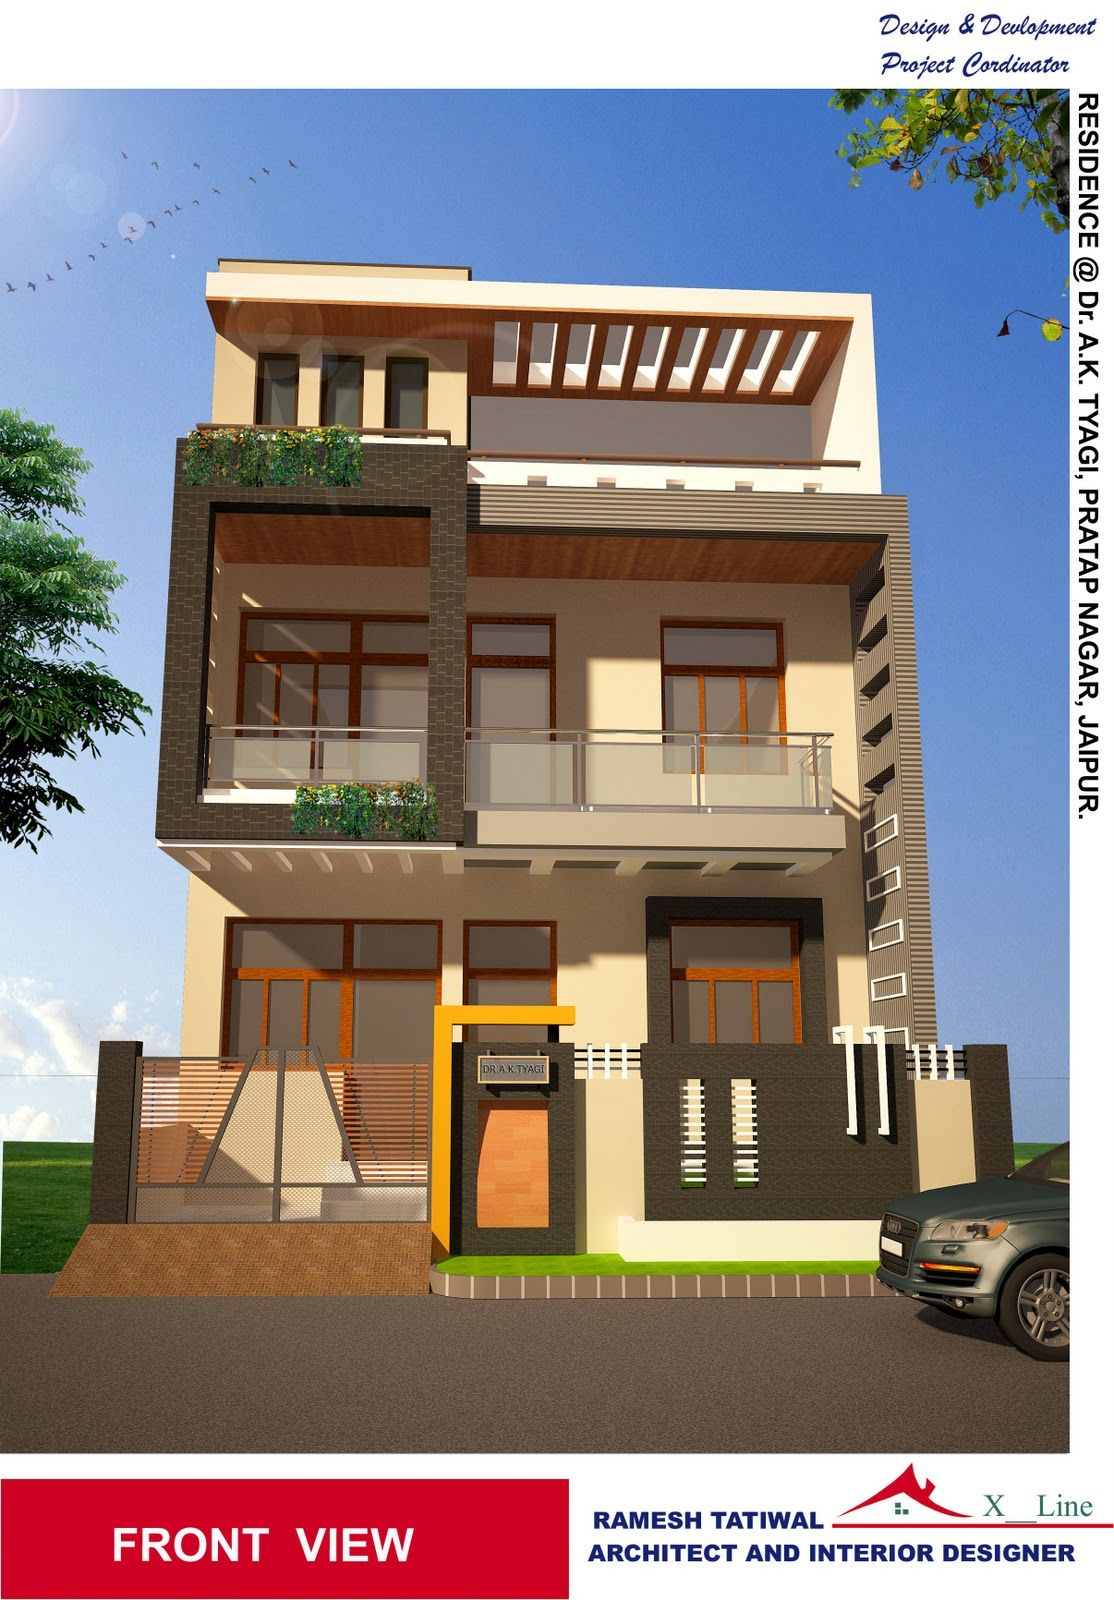 modern houses designs india house and home design - Architectural Design Photos Of A Home